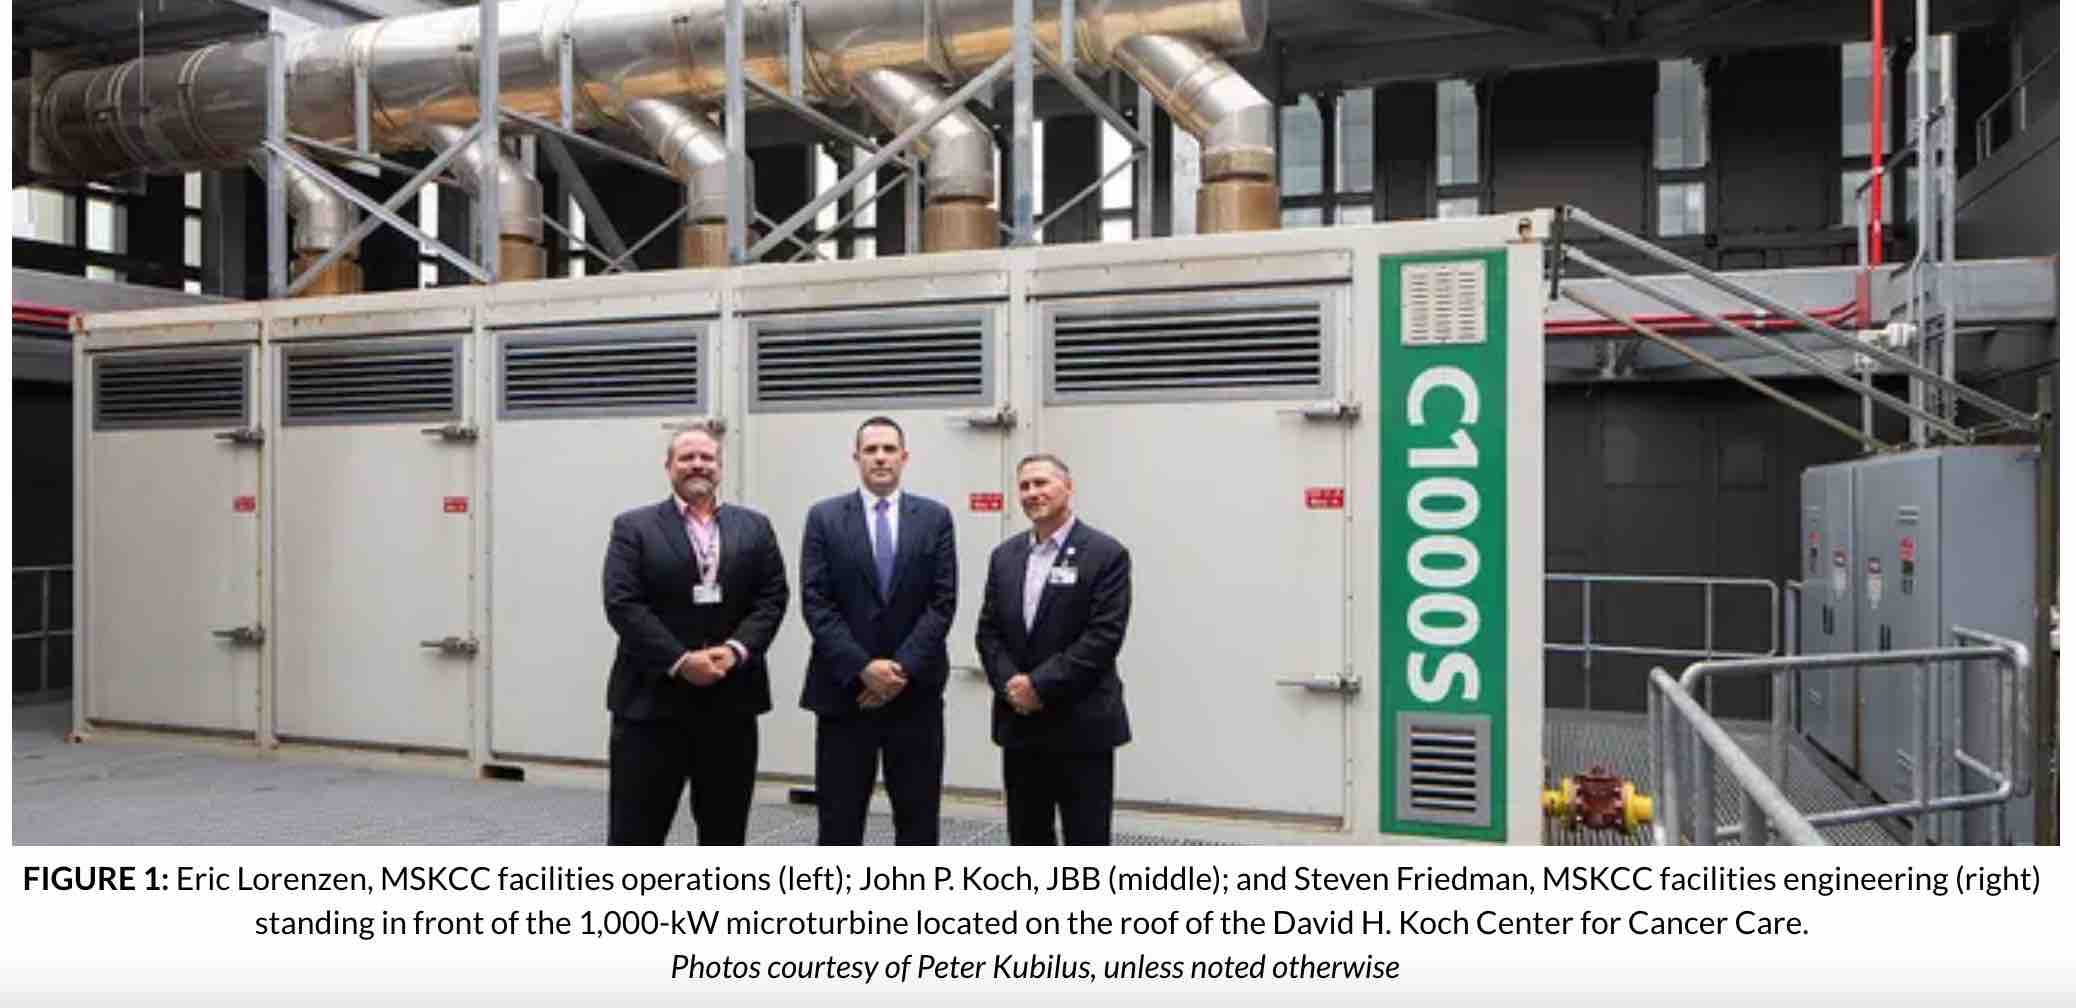 Eric Lorenzen, MSKCC facilities operations (left); John P. Koch, JBB (middle); and Steven Friedman, MSKCC facilities engineering (right) standing in front of the 1,000-kW microturbine located on the roof of the David H. Koch Center for Cancer Care.  Photos courtesy of Peter Kubilus, unless noted otherwise